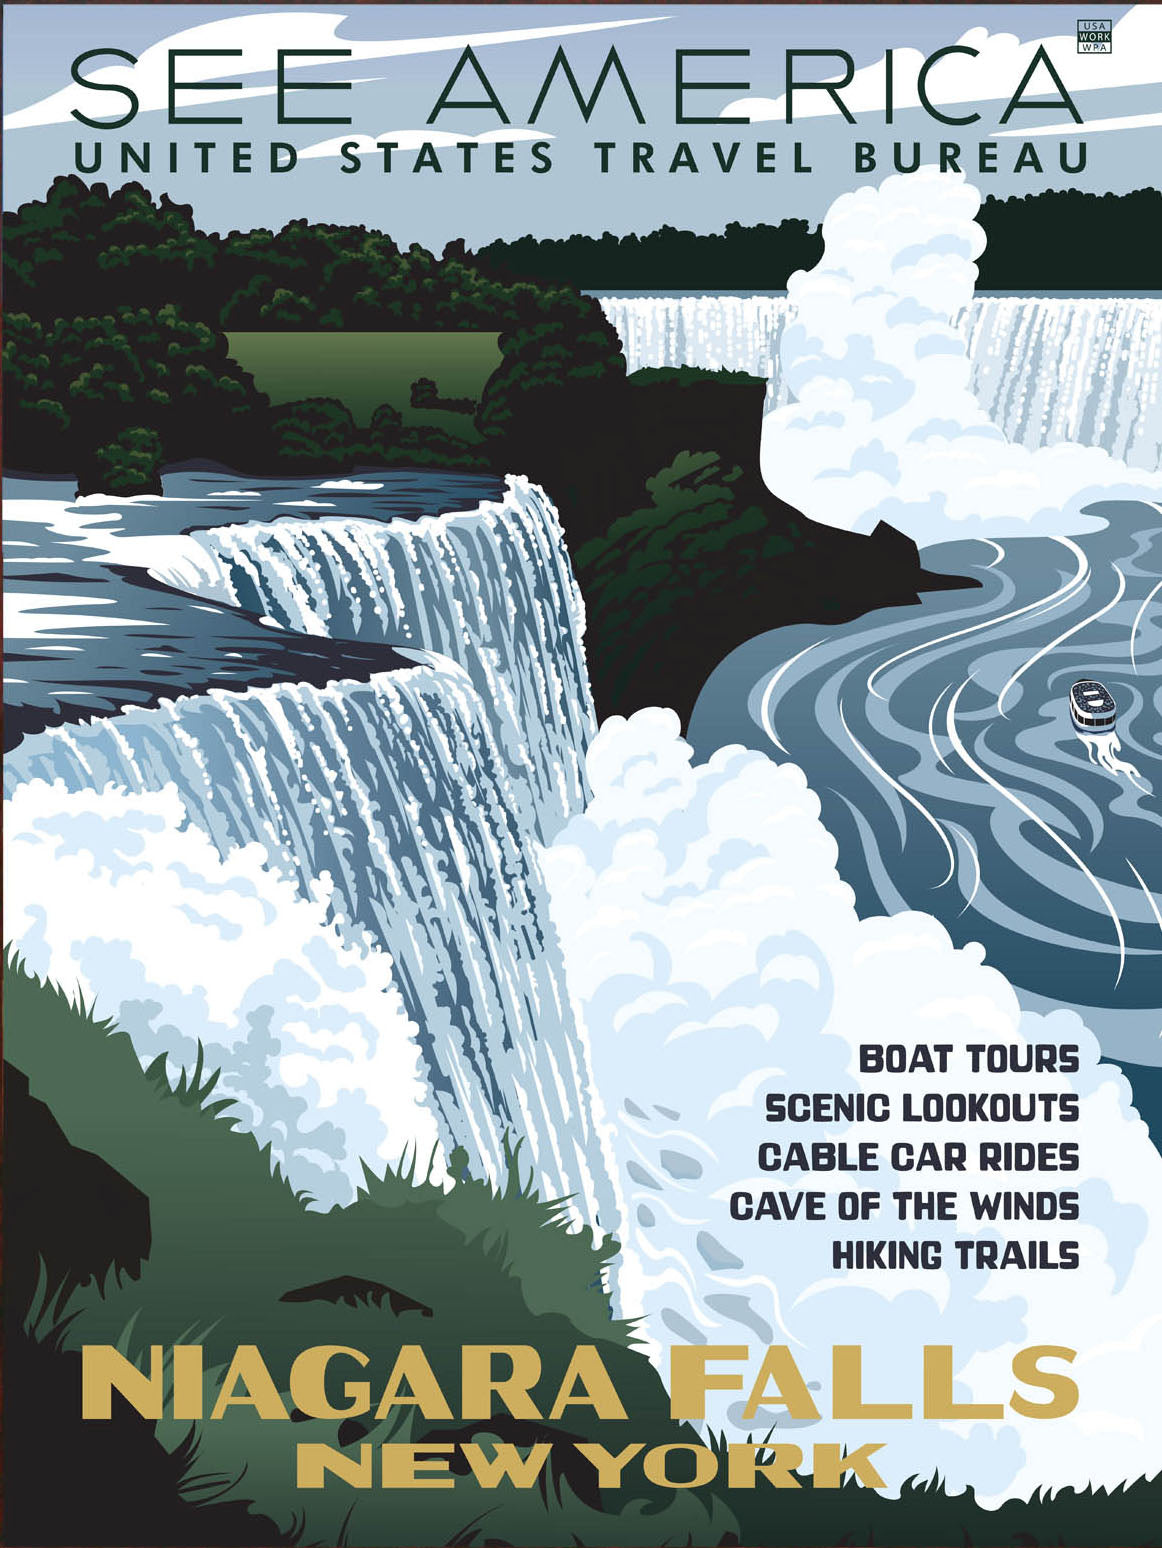 <p>This is a faithful reproduction of a 1930s vintage poster for the United States Travel Bureau promoting Niagara Falls.</p>